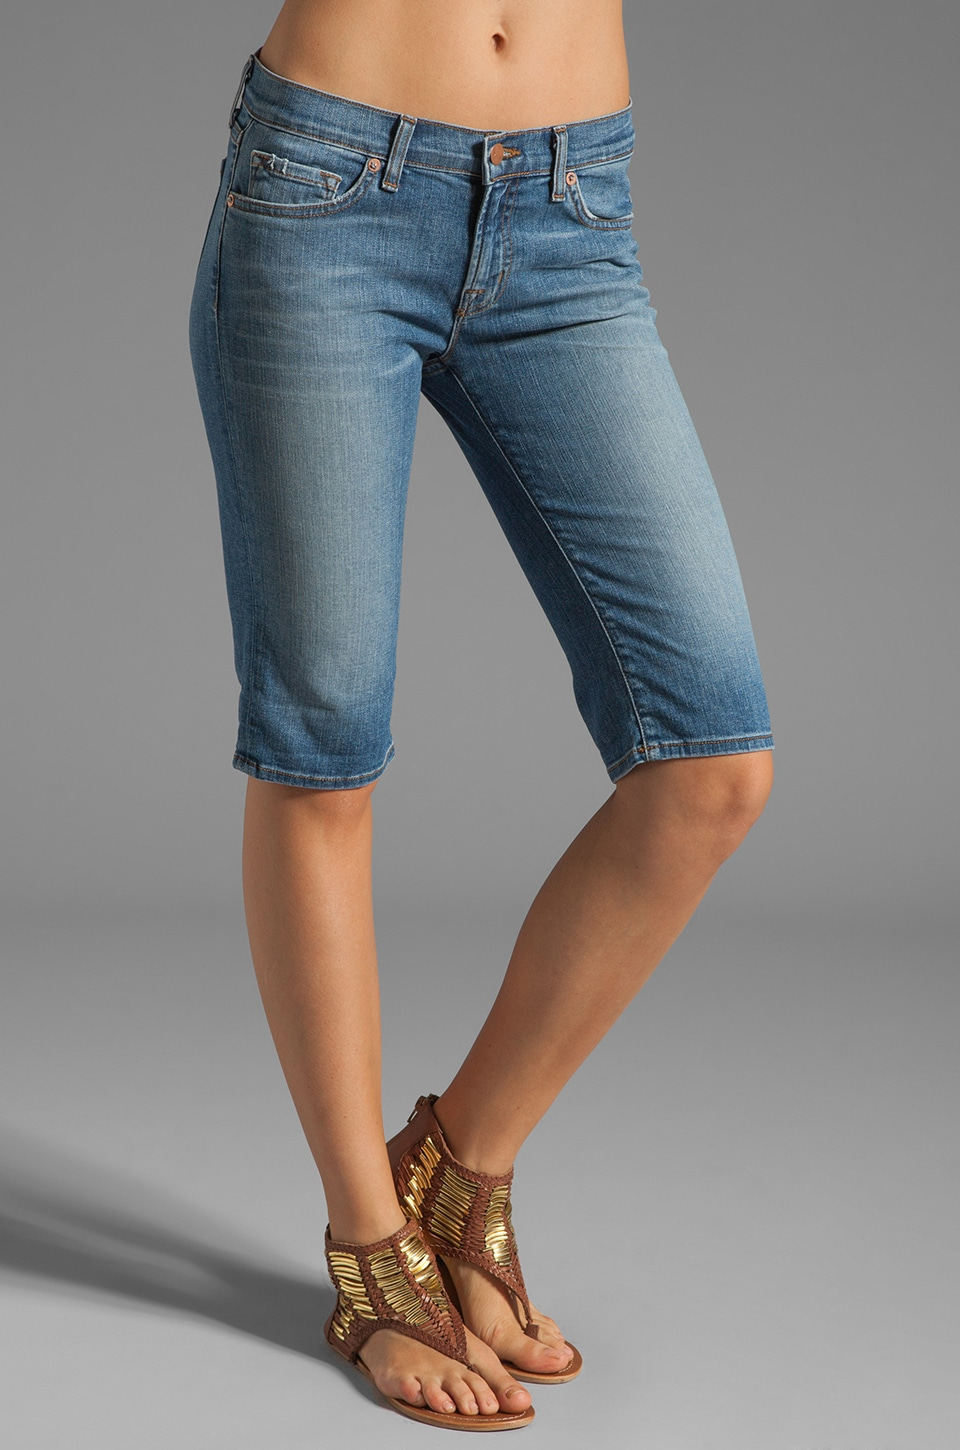 J Brand Knee Cuff Short in Bliss